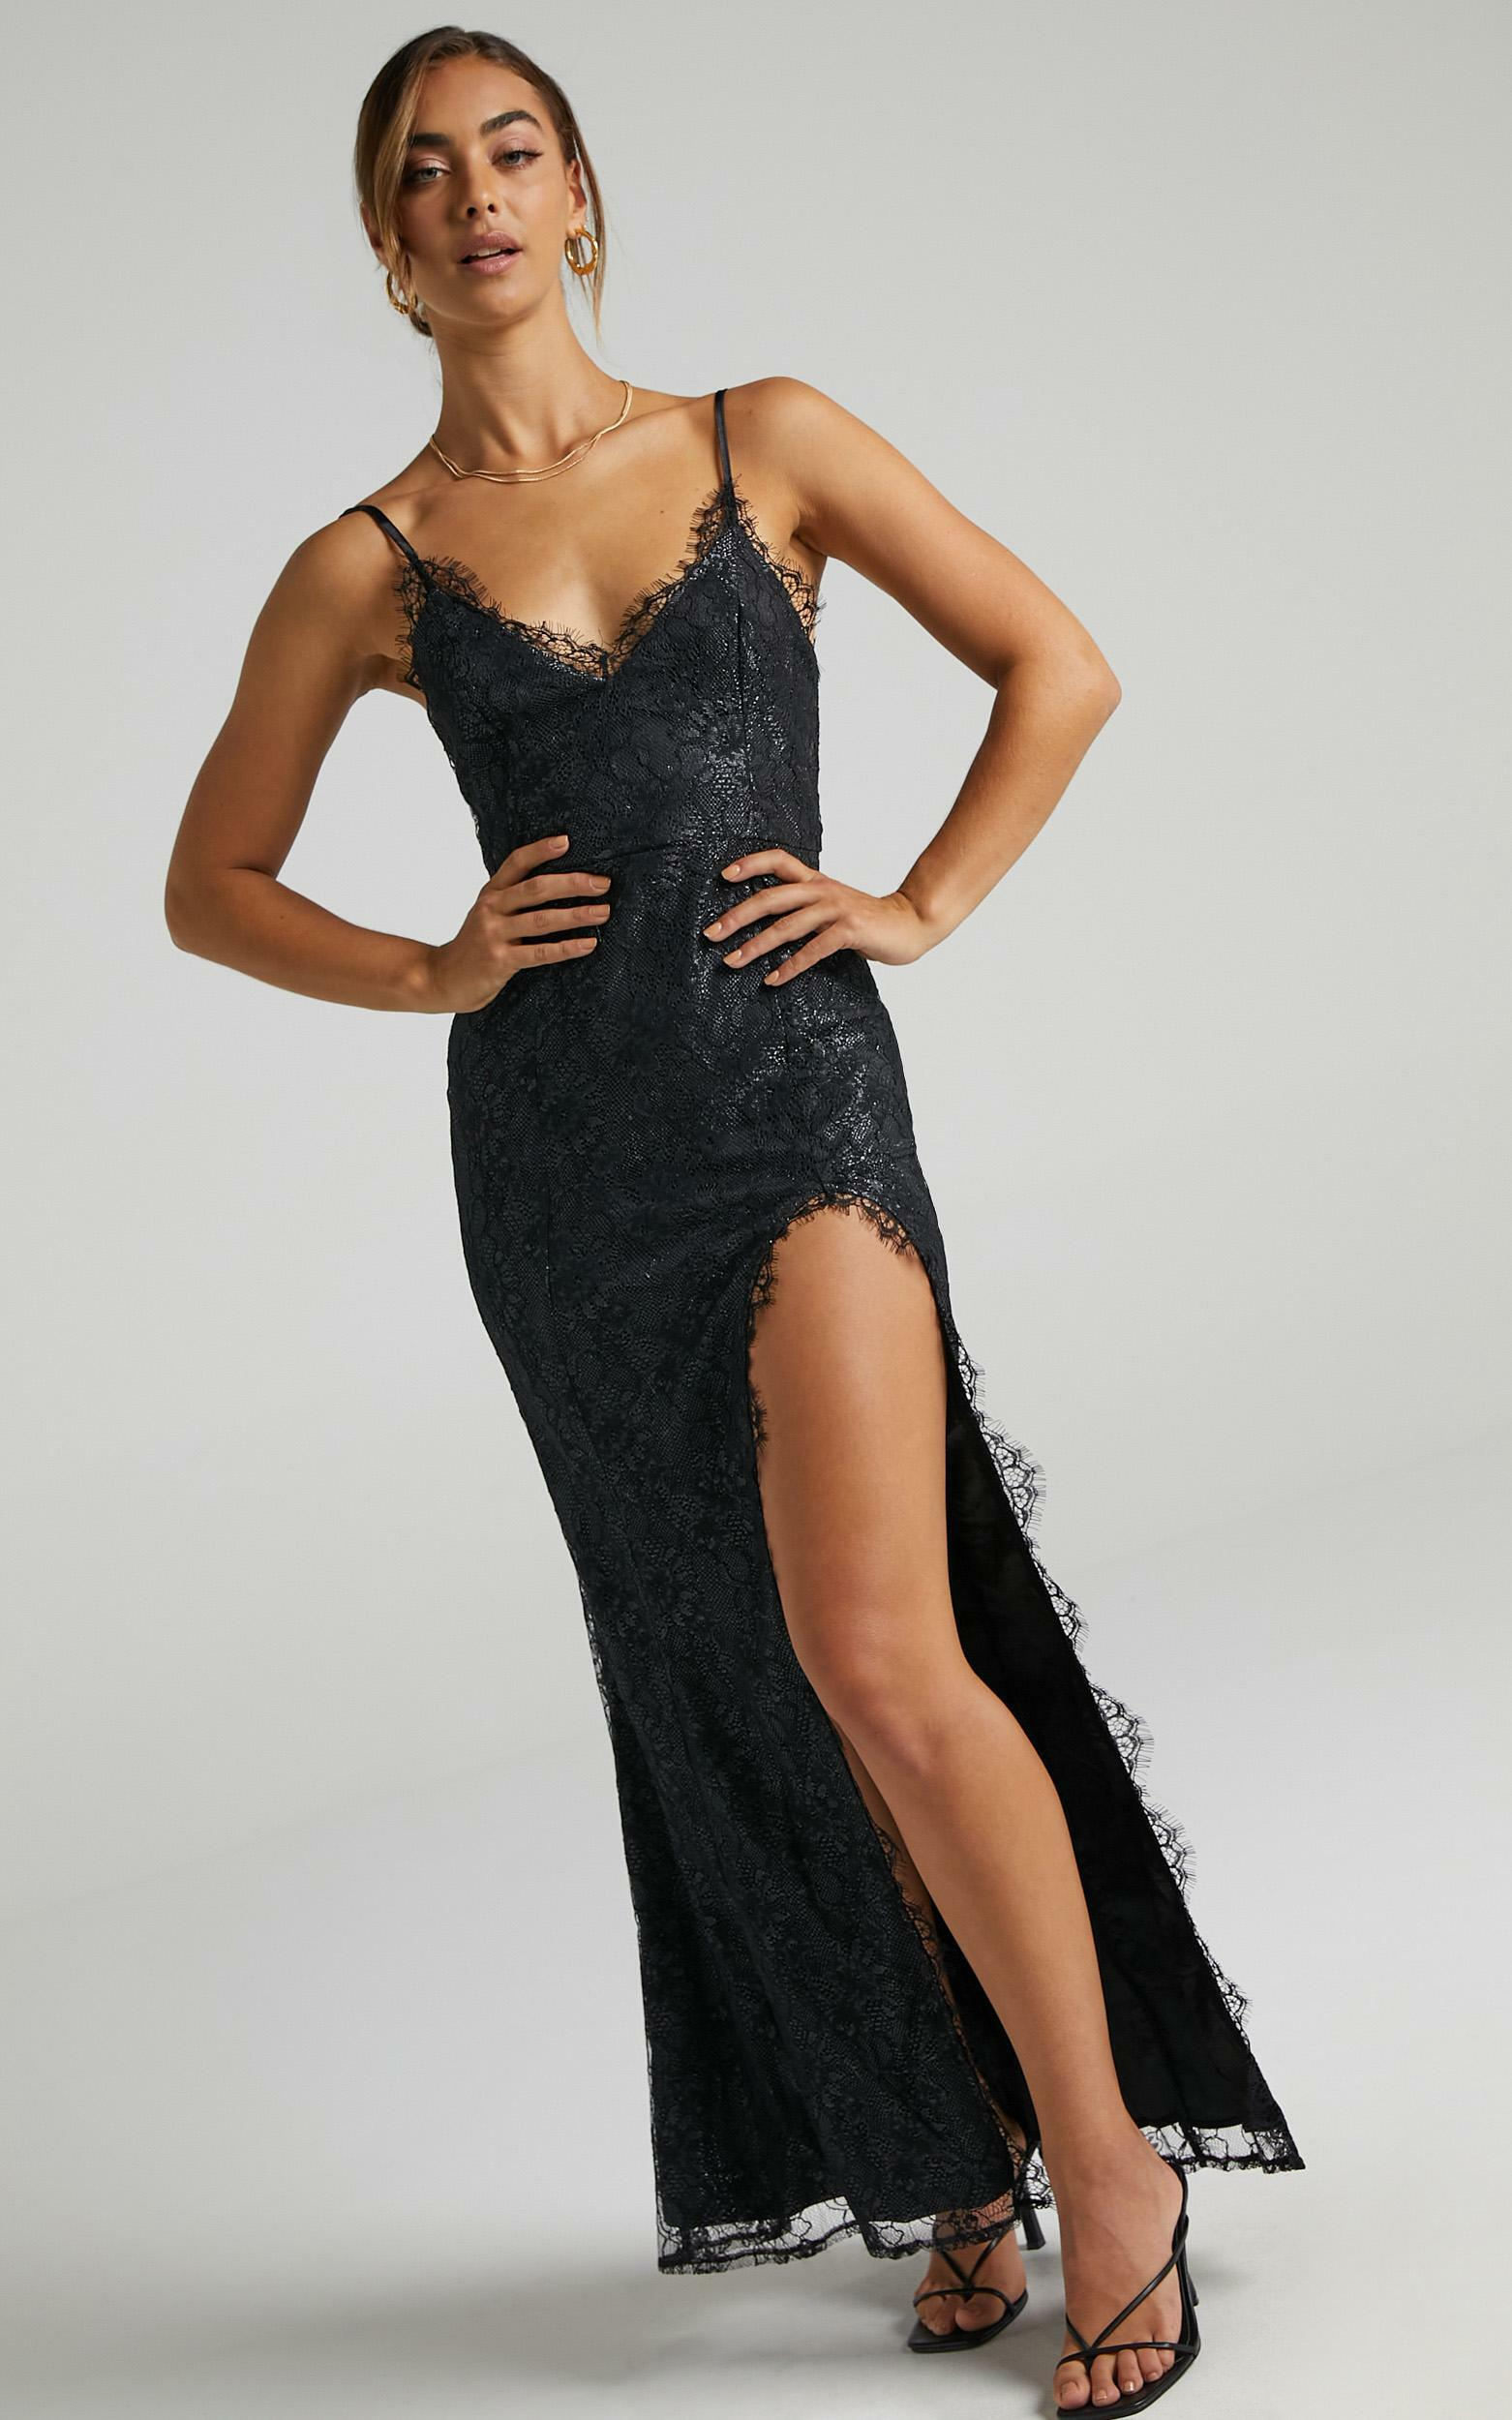 Stay Flow Dress in Black Lace - 20, BLK1, hi-res image number null